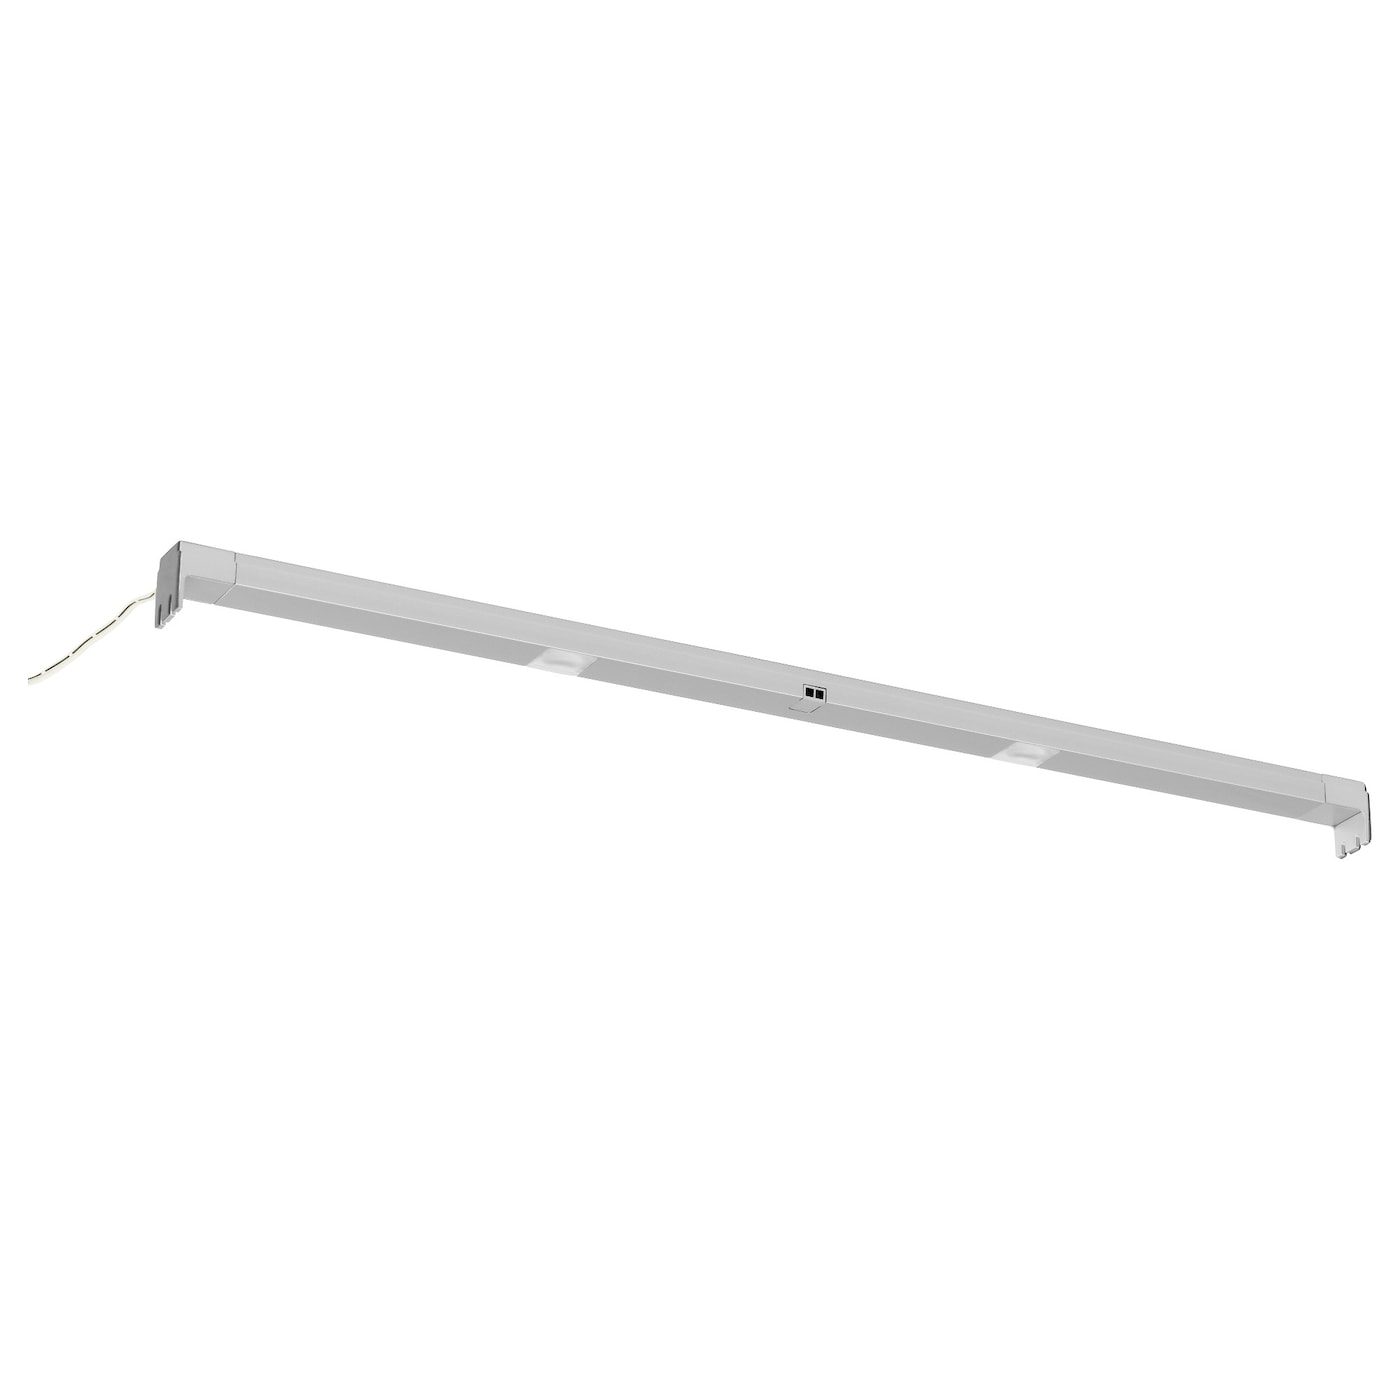 IKEA OMLOPP LED lighting strip for drawers Adds a decorative finish to your kitchen.